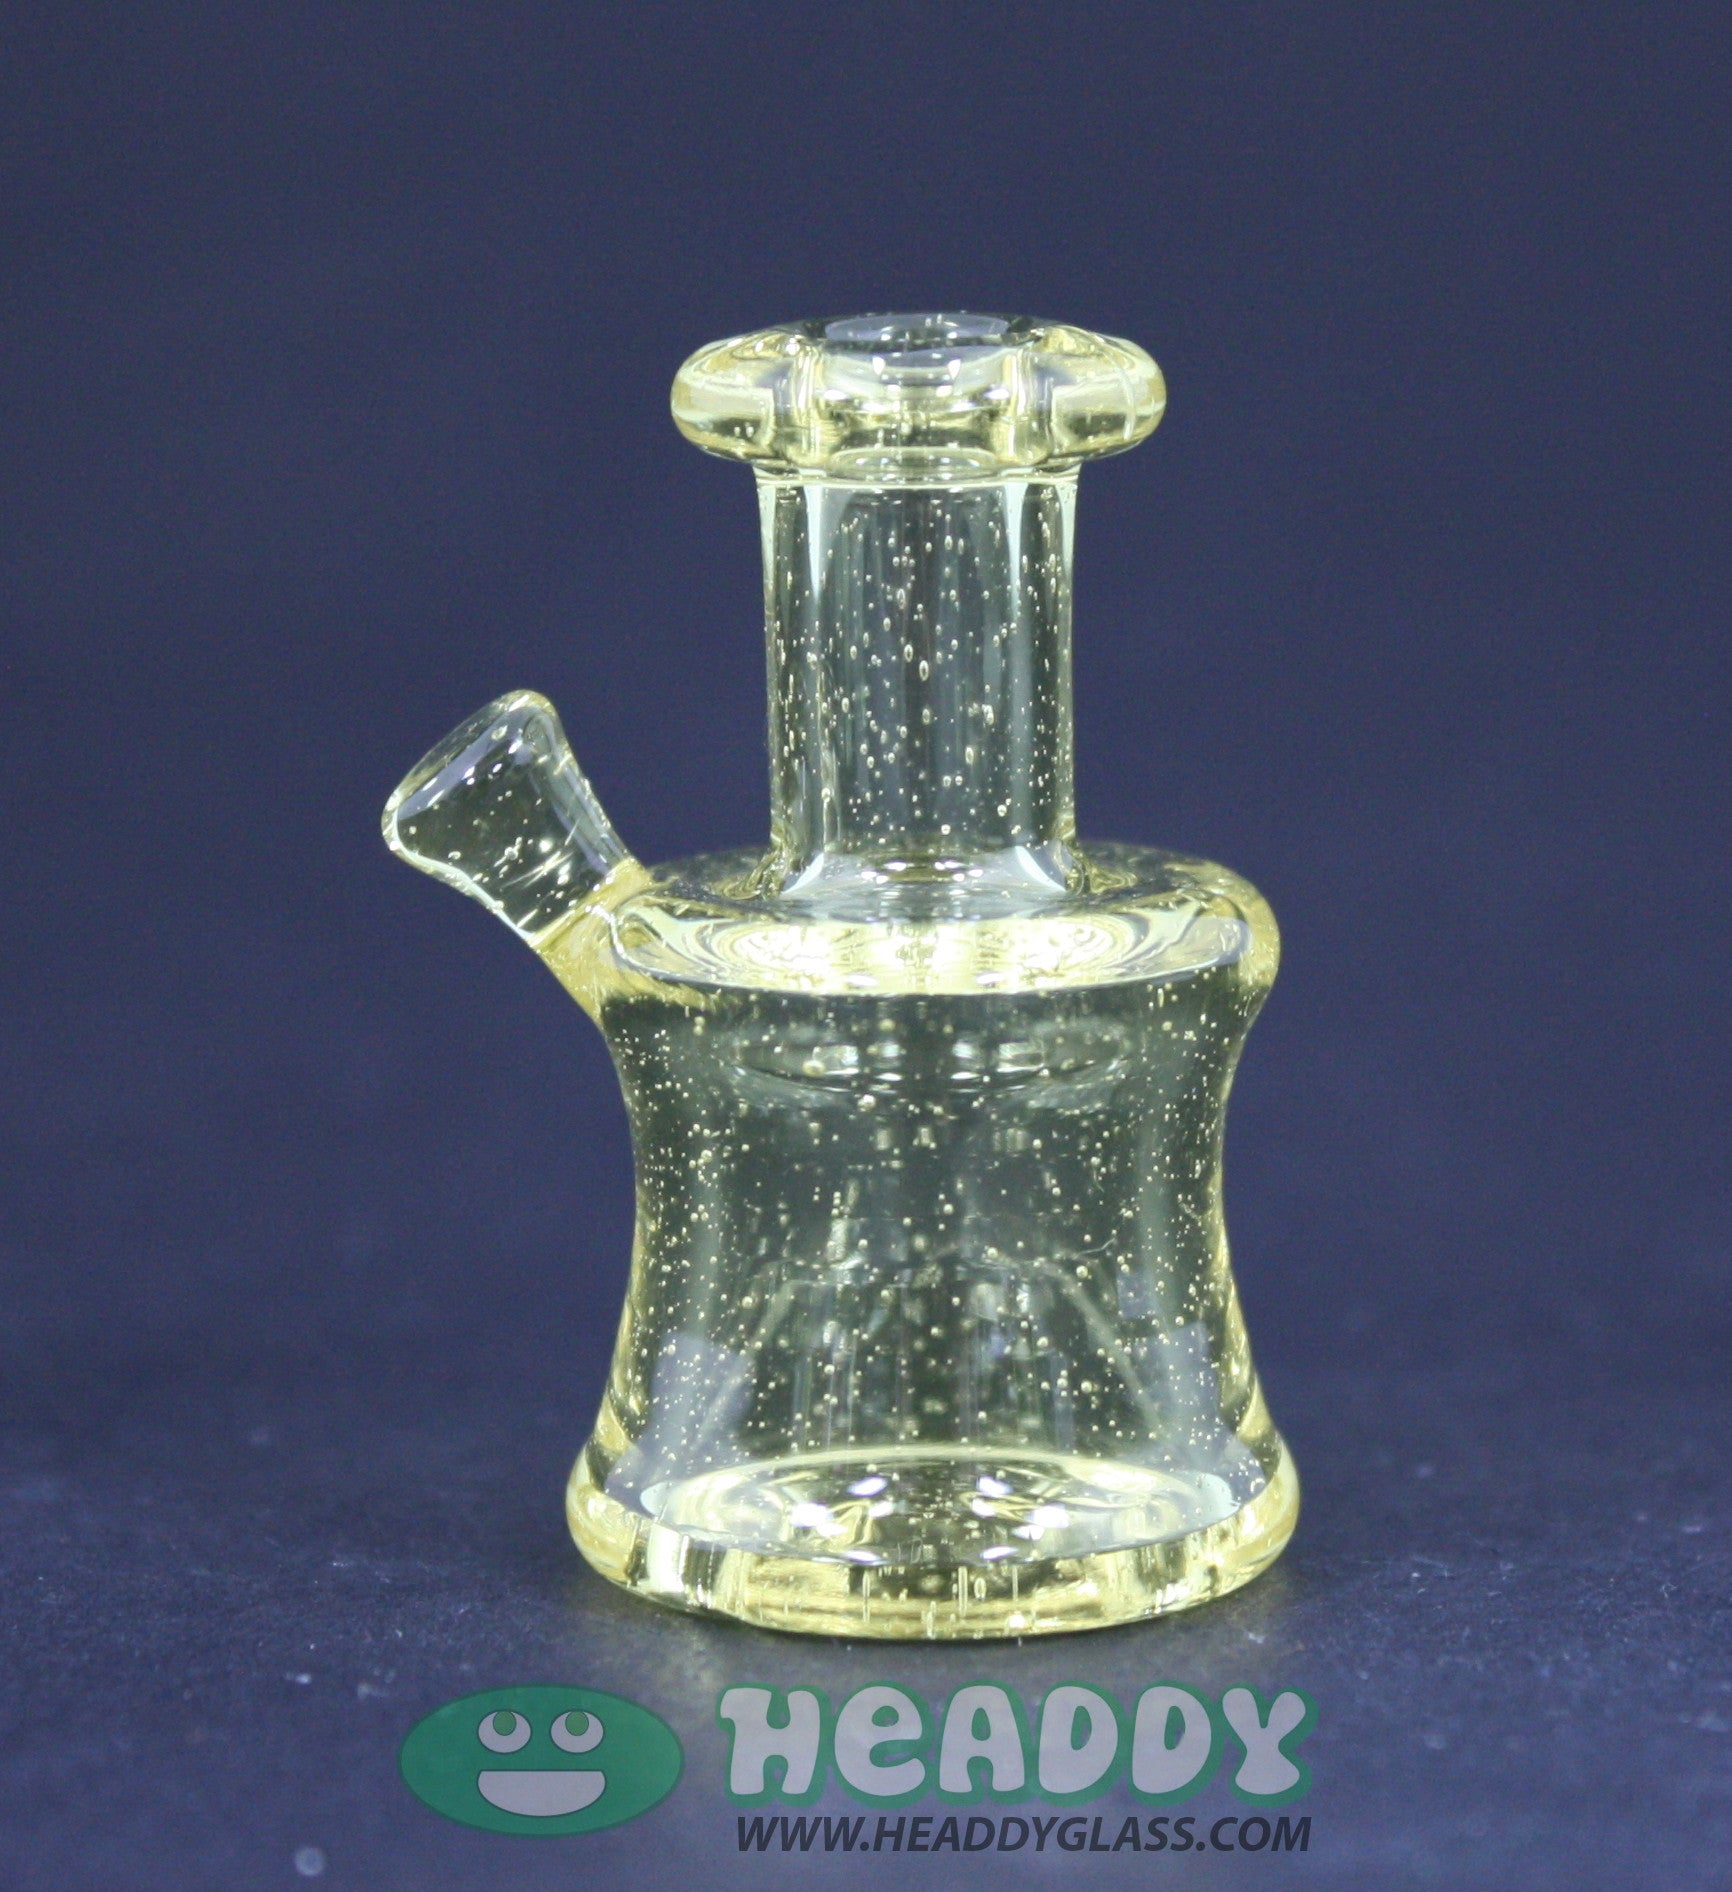 Ryan Tate serum minitube carb cap - Headdy Glass